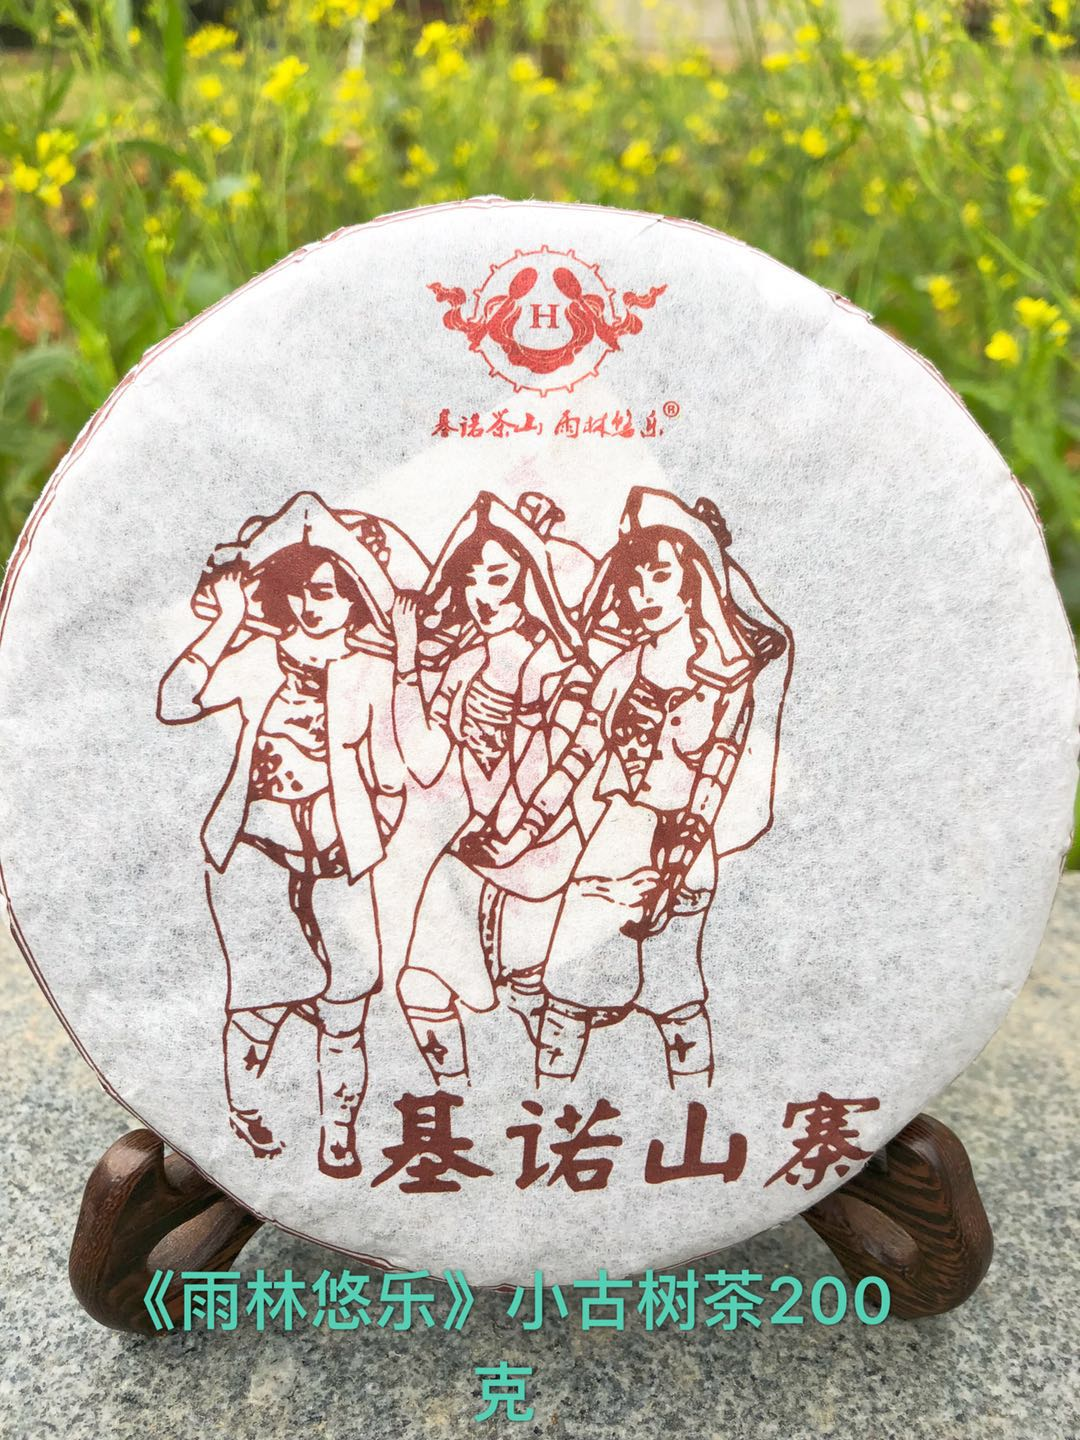 Rain forest Youle spring Jinuo mountain village Puer tea raw tea small ancient tree tea 200g cake in 2020